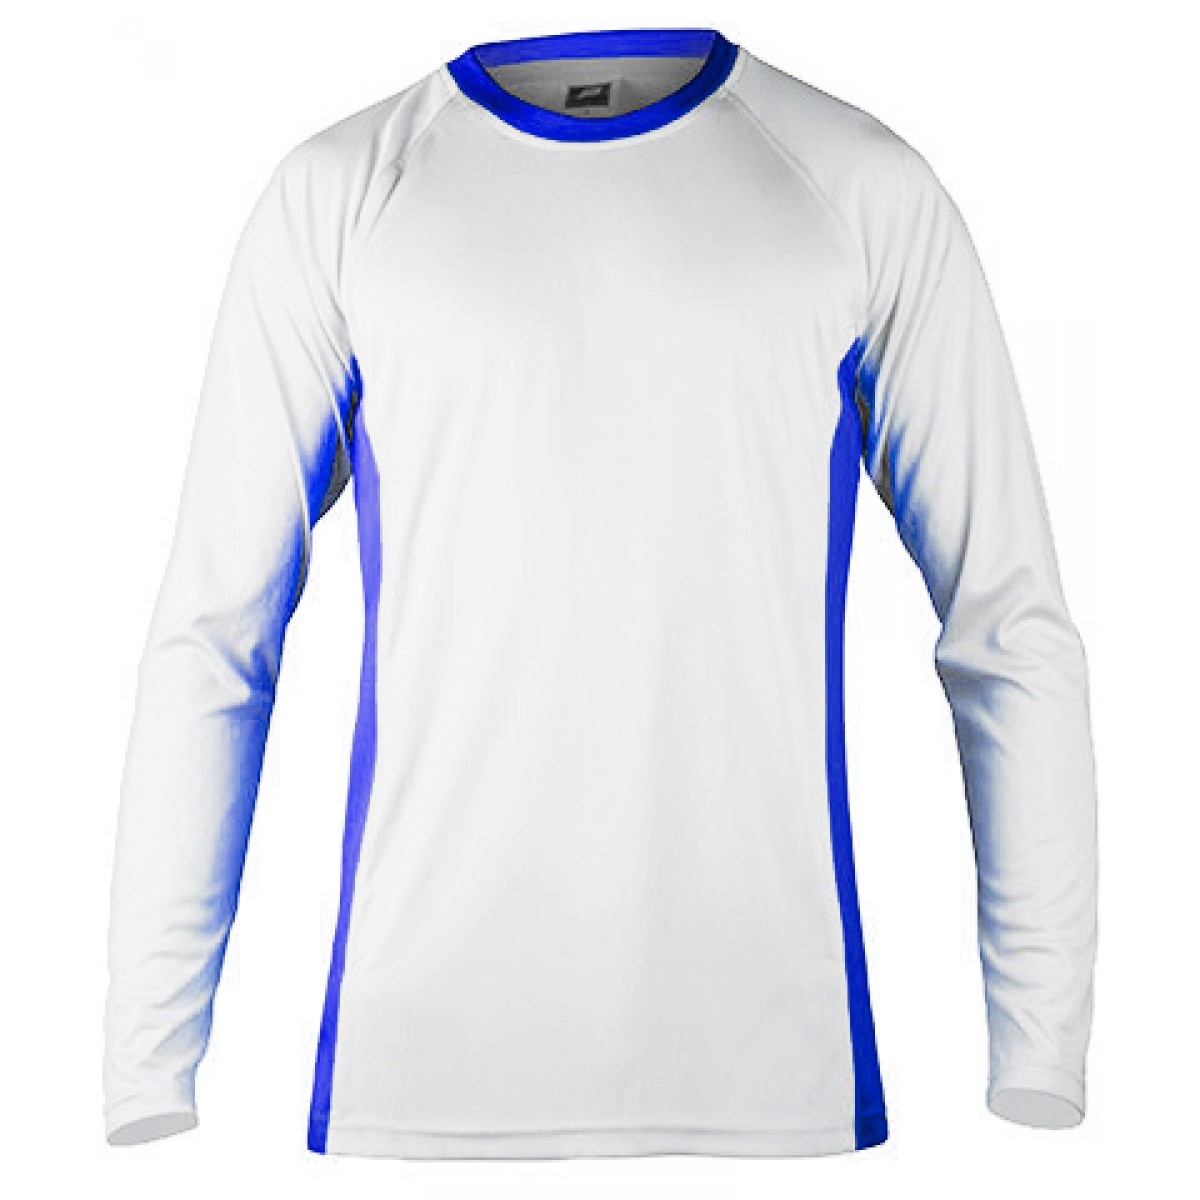 Long Sleeves Performance With Side Insert-White/Blue-YL